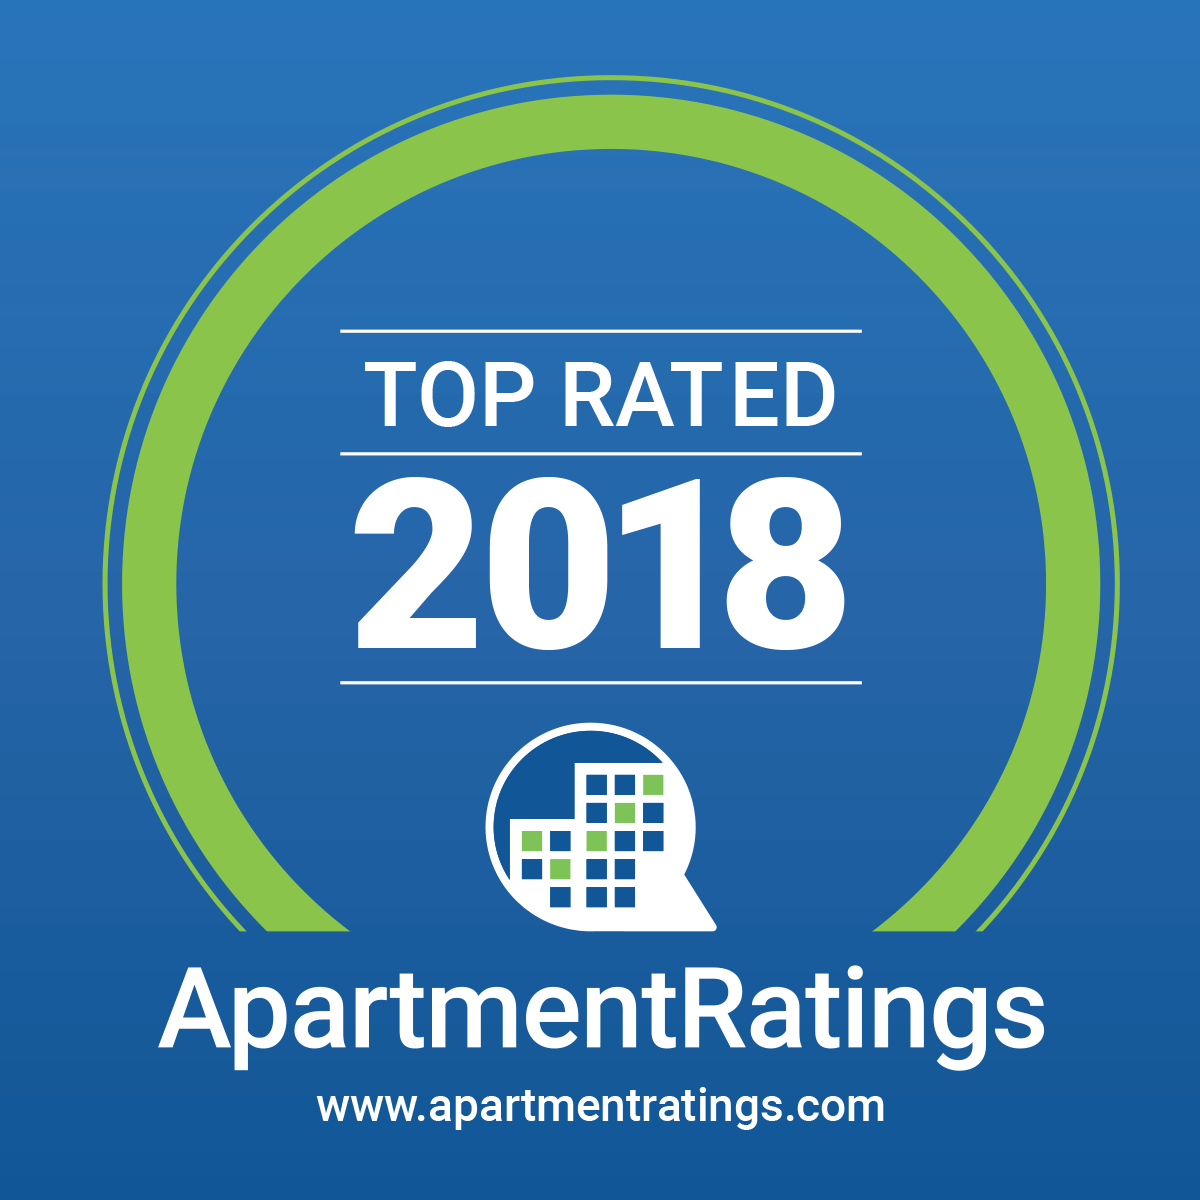 Top Rated 2018 ApartmentRatings